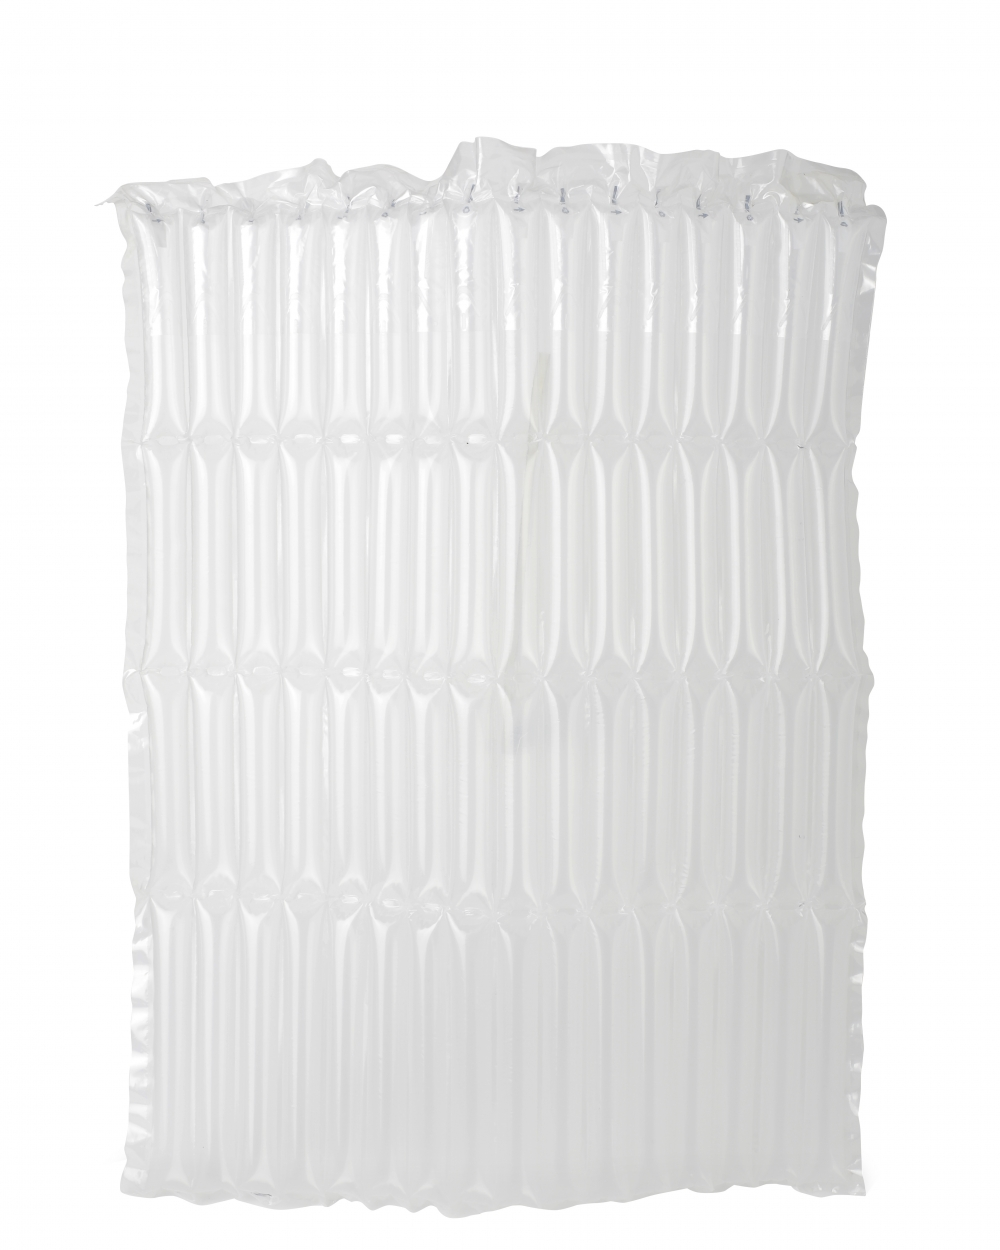 Airpack Roll 80 cm.